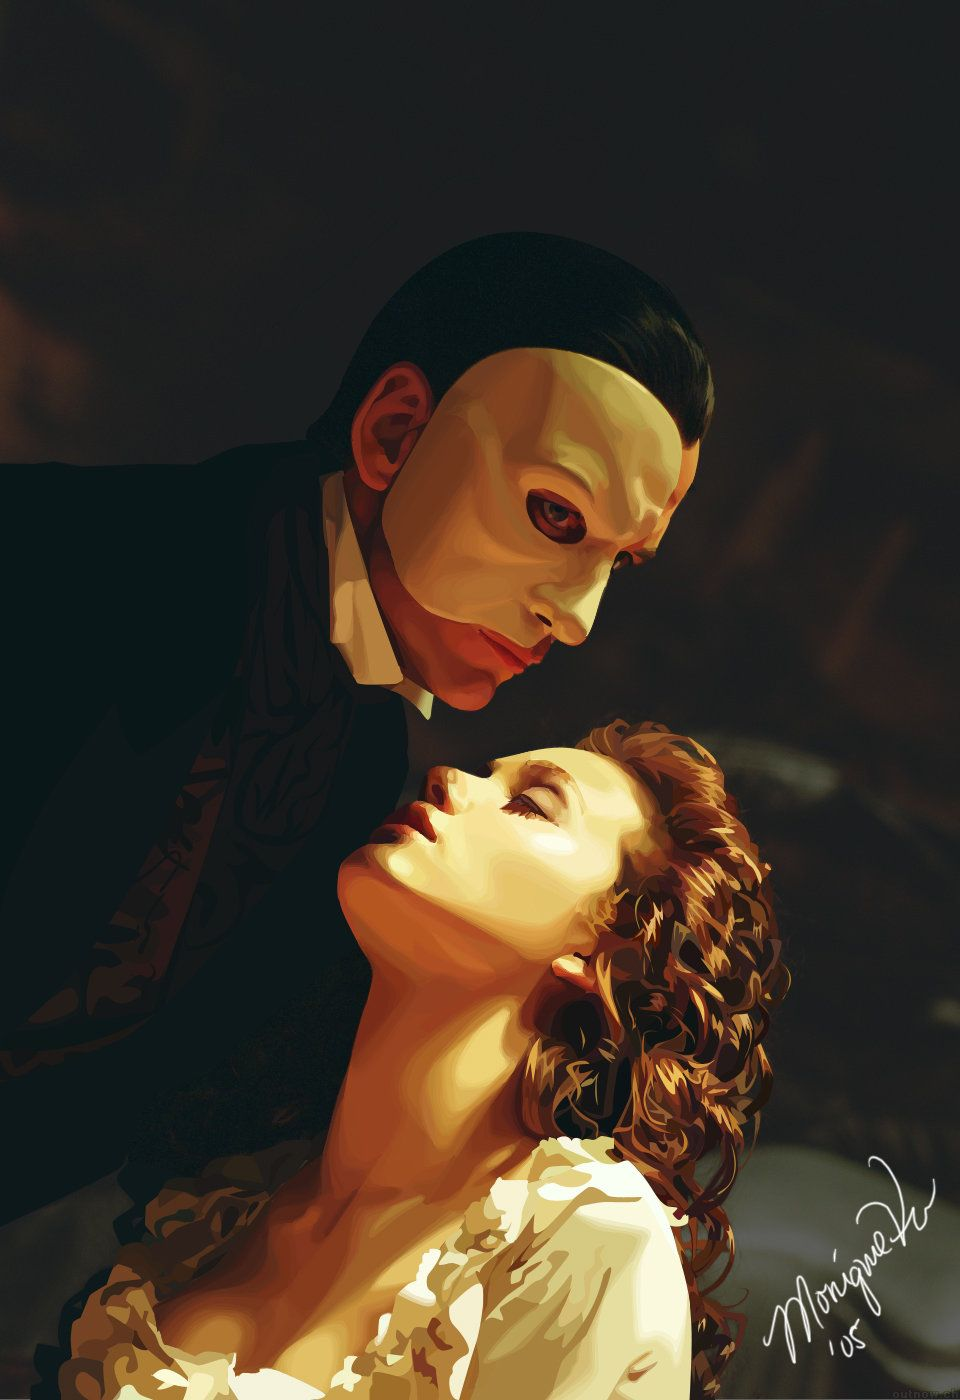 From the Phantom of the opera, by decep on Deviantart